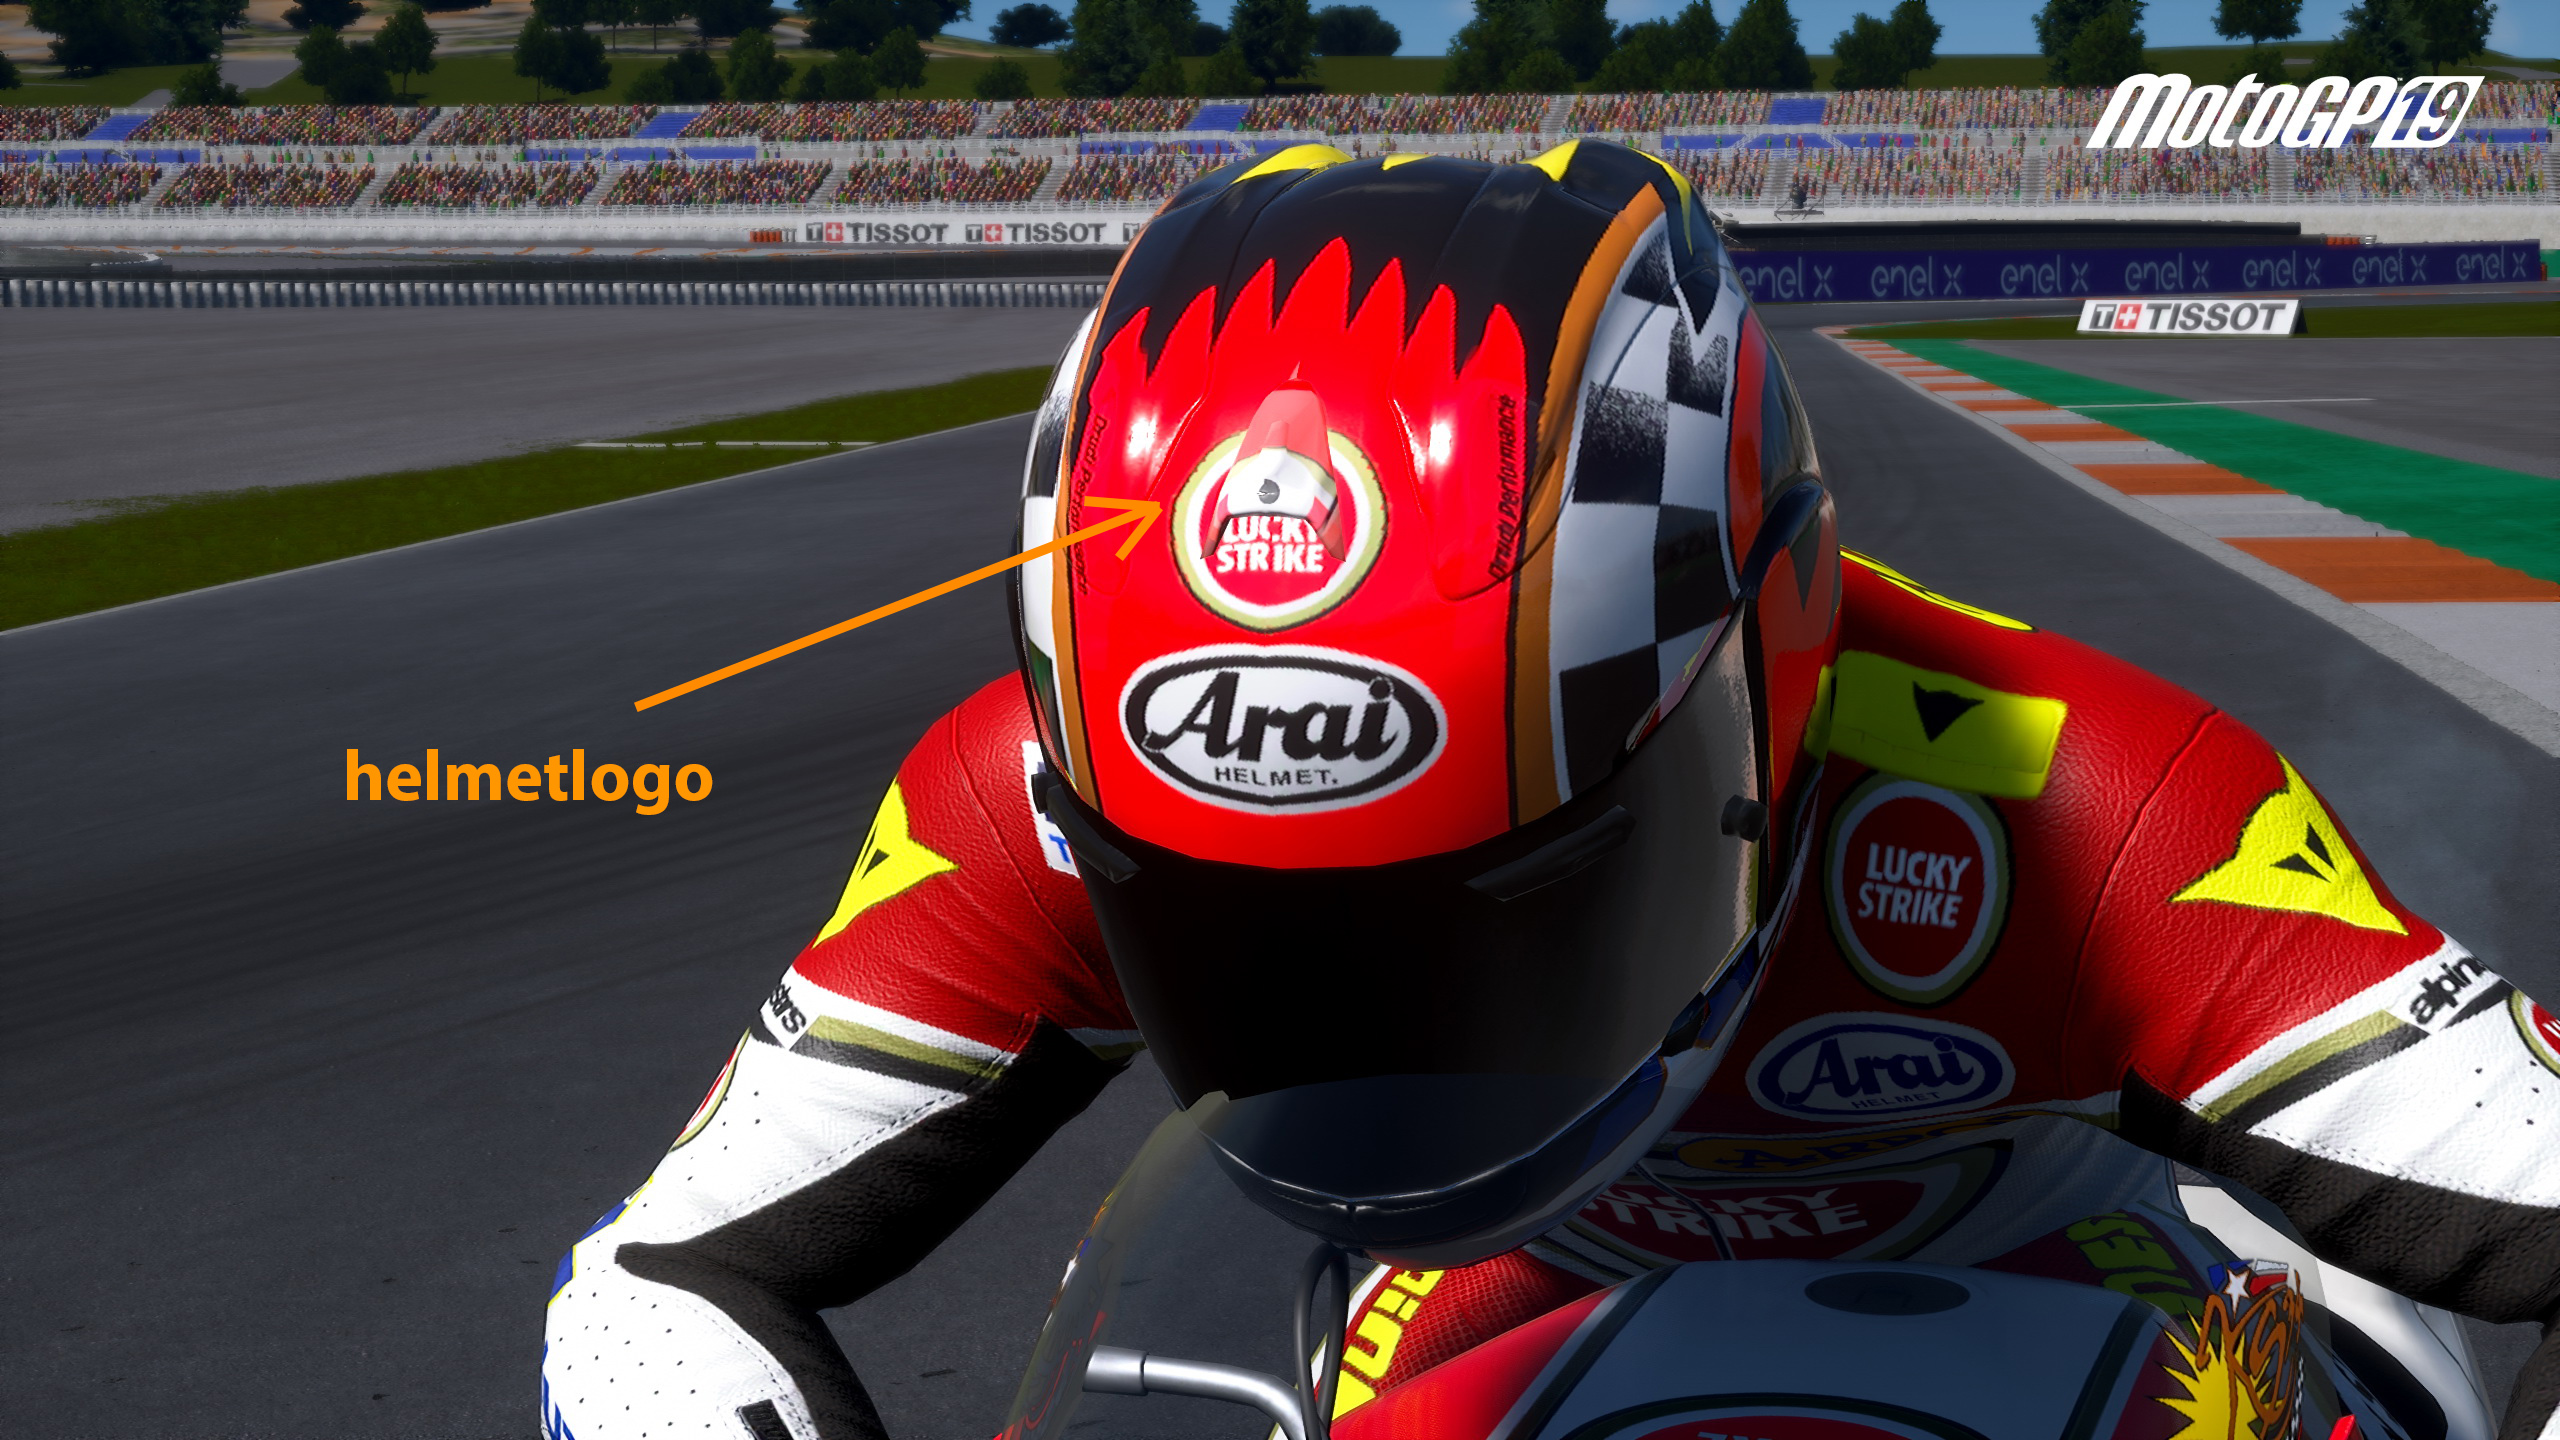 motogp19-Win64-Shipping_2019_07_12_18_51_56_158.jpg